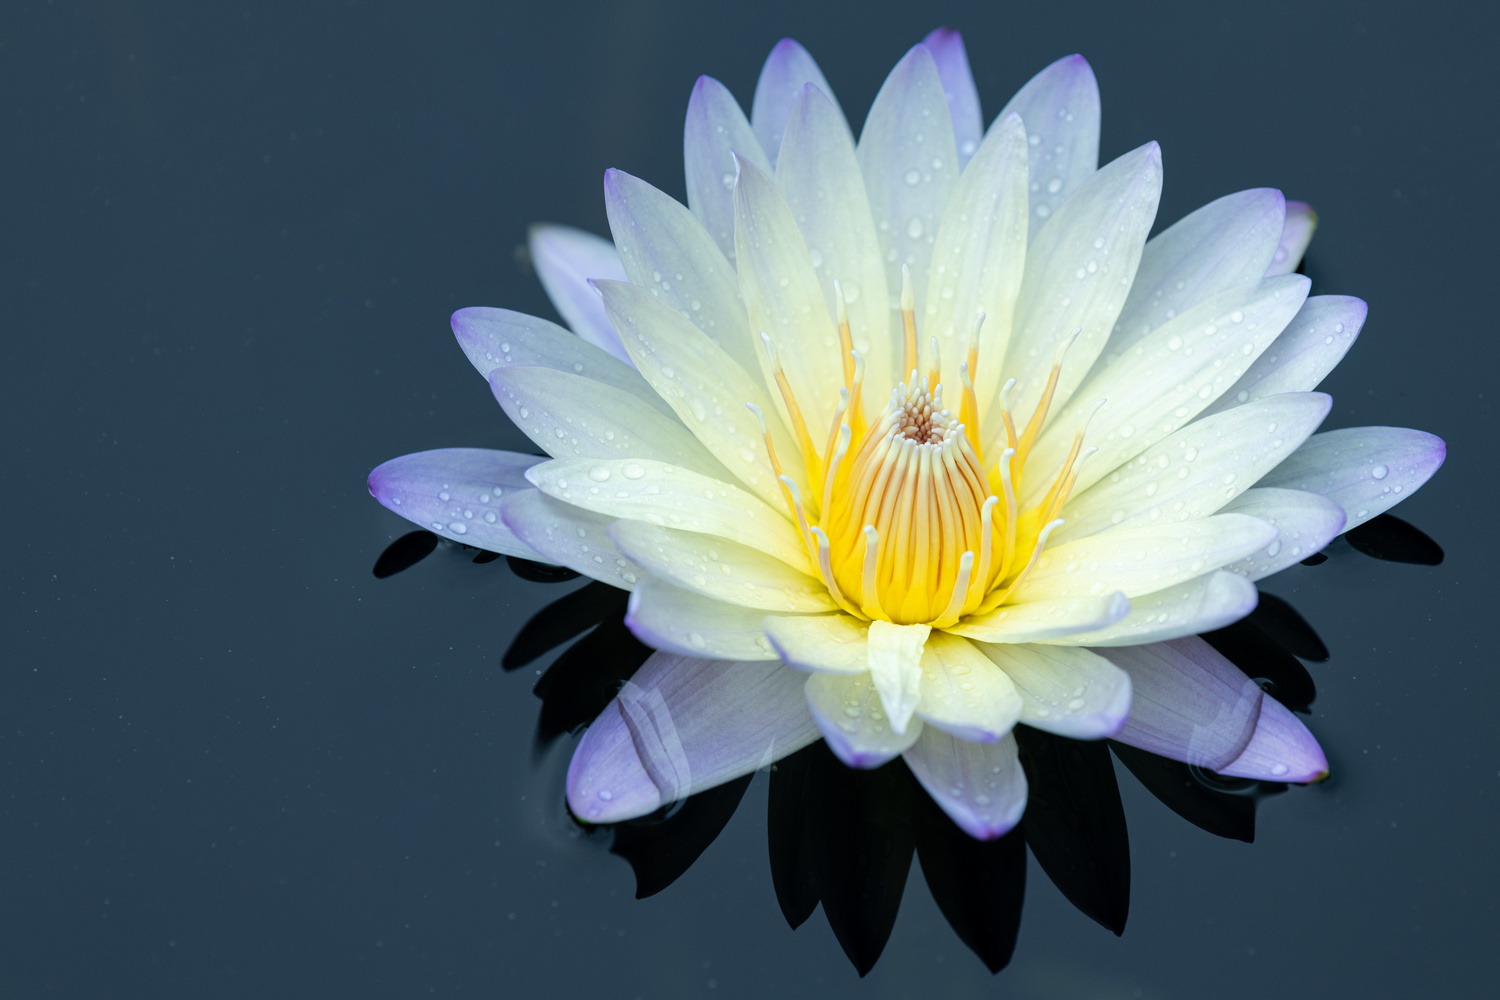 Water lily by Skyler Ewing